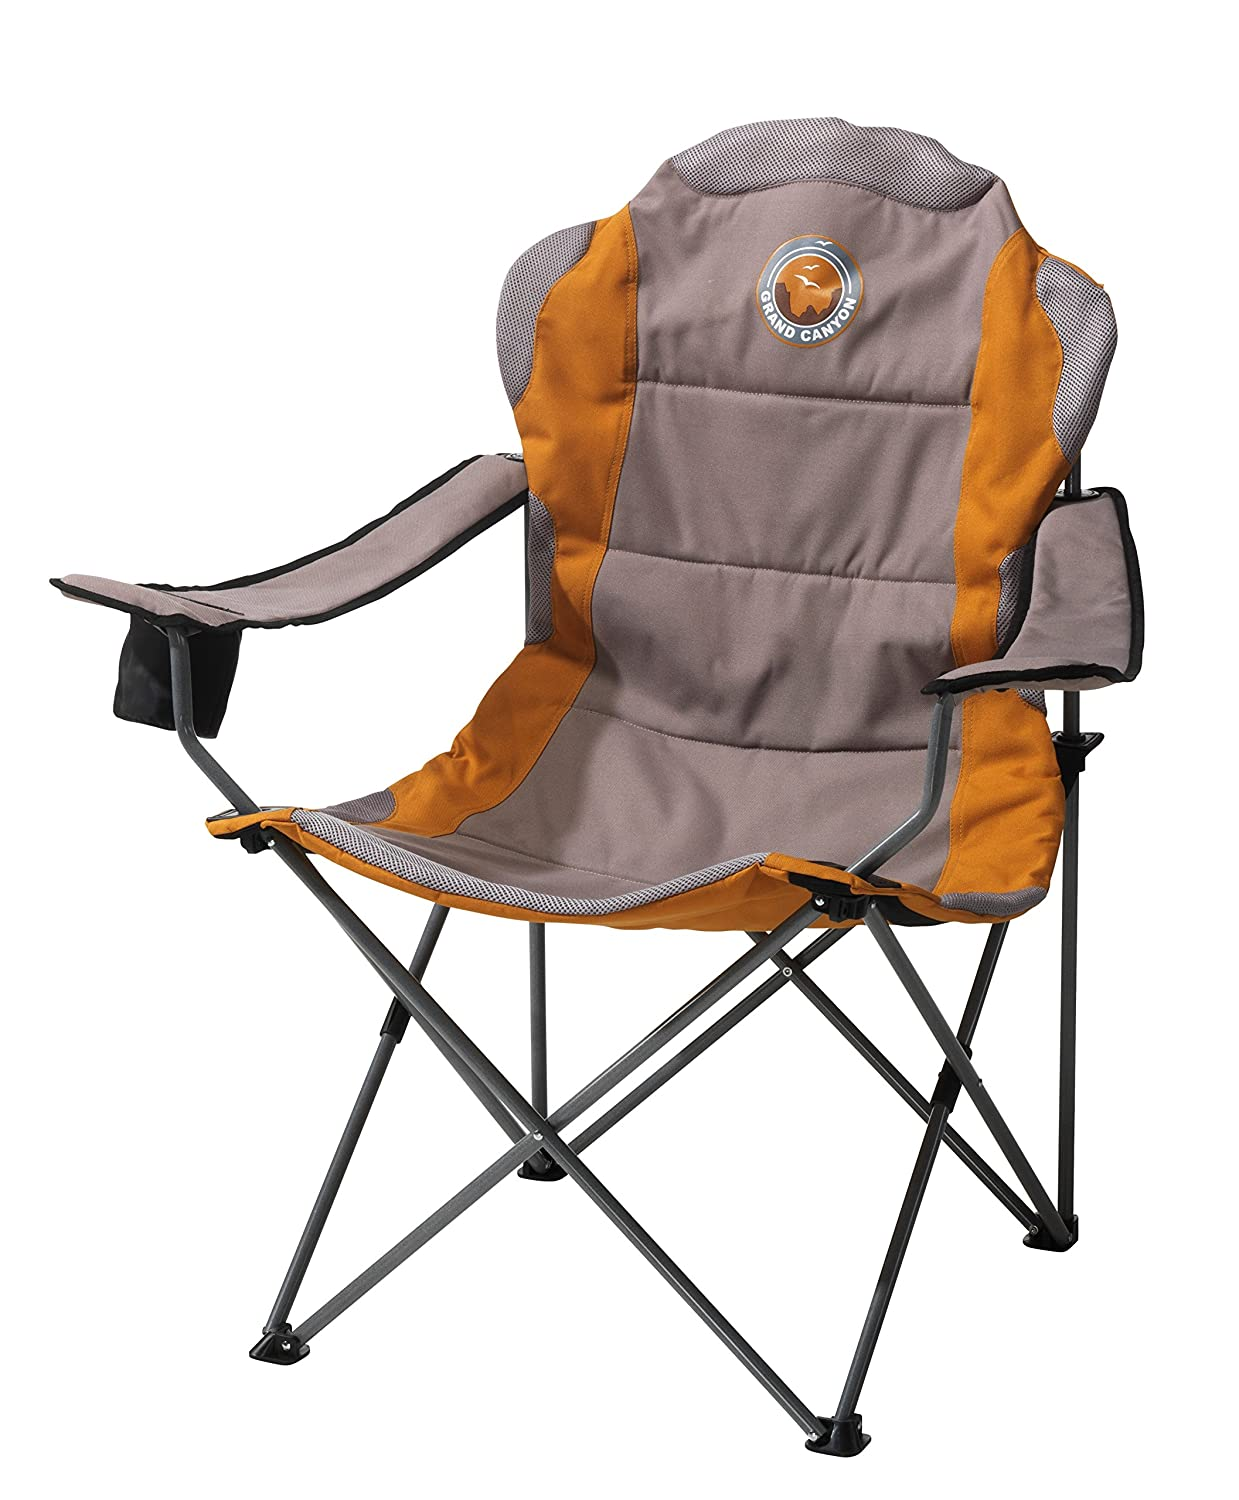 Grand Canyon Comfort, faltbarer Campingstuhl, Stahl, grau/orange, 308012